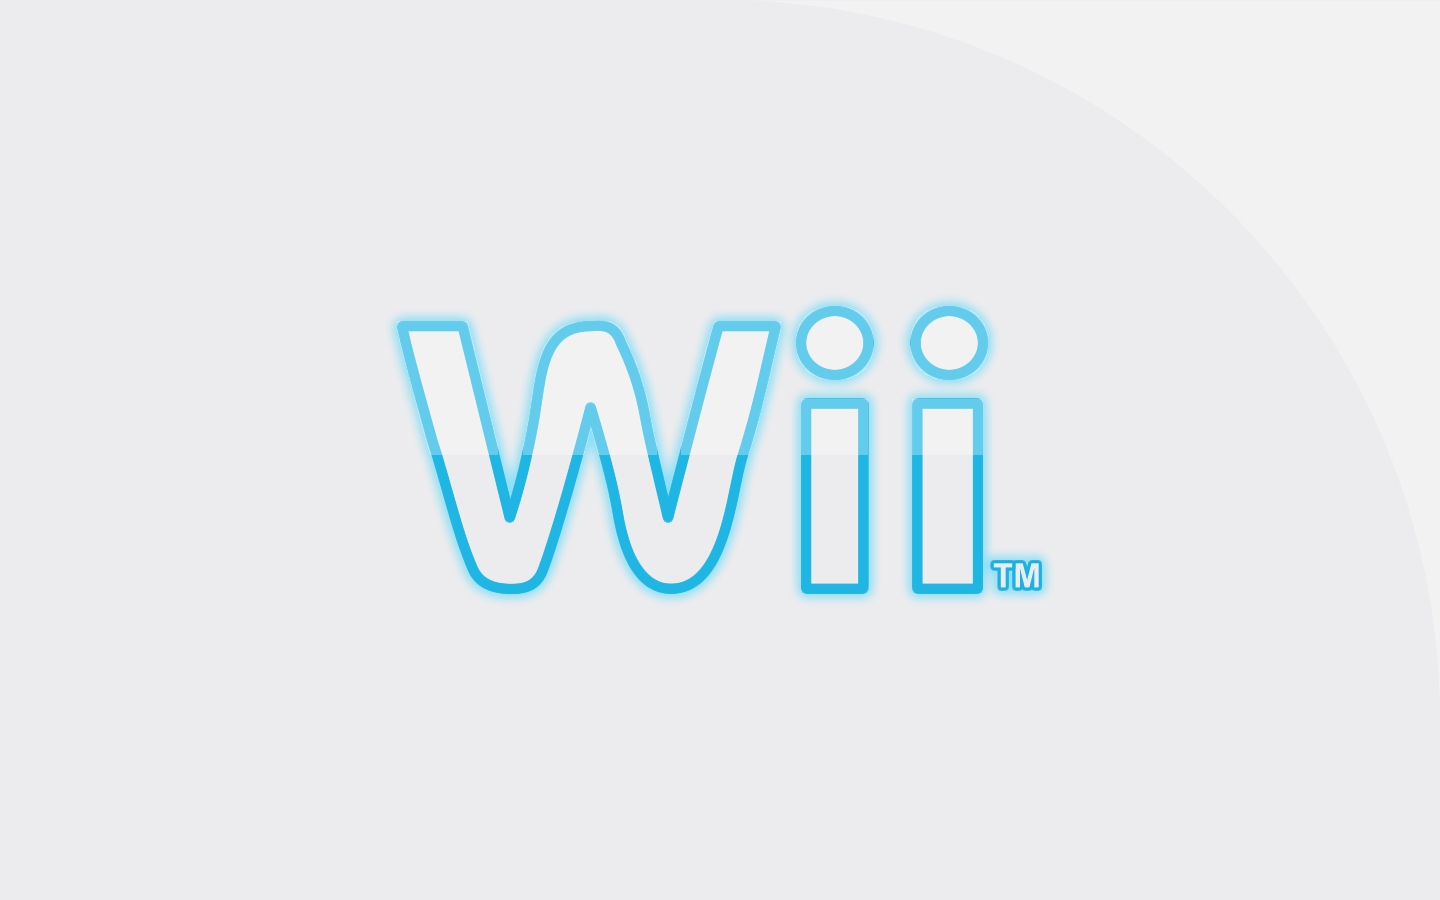 WII Wallpaper.png